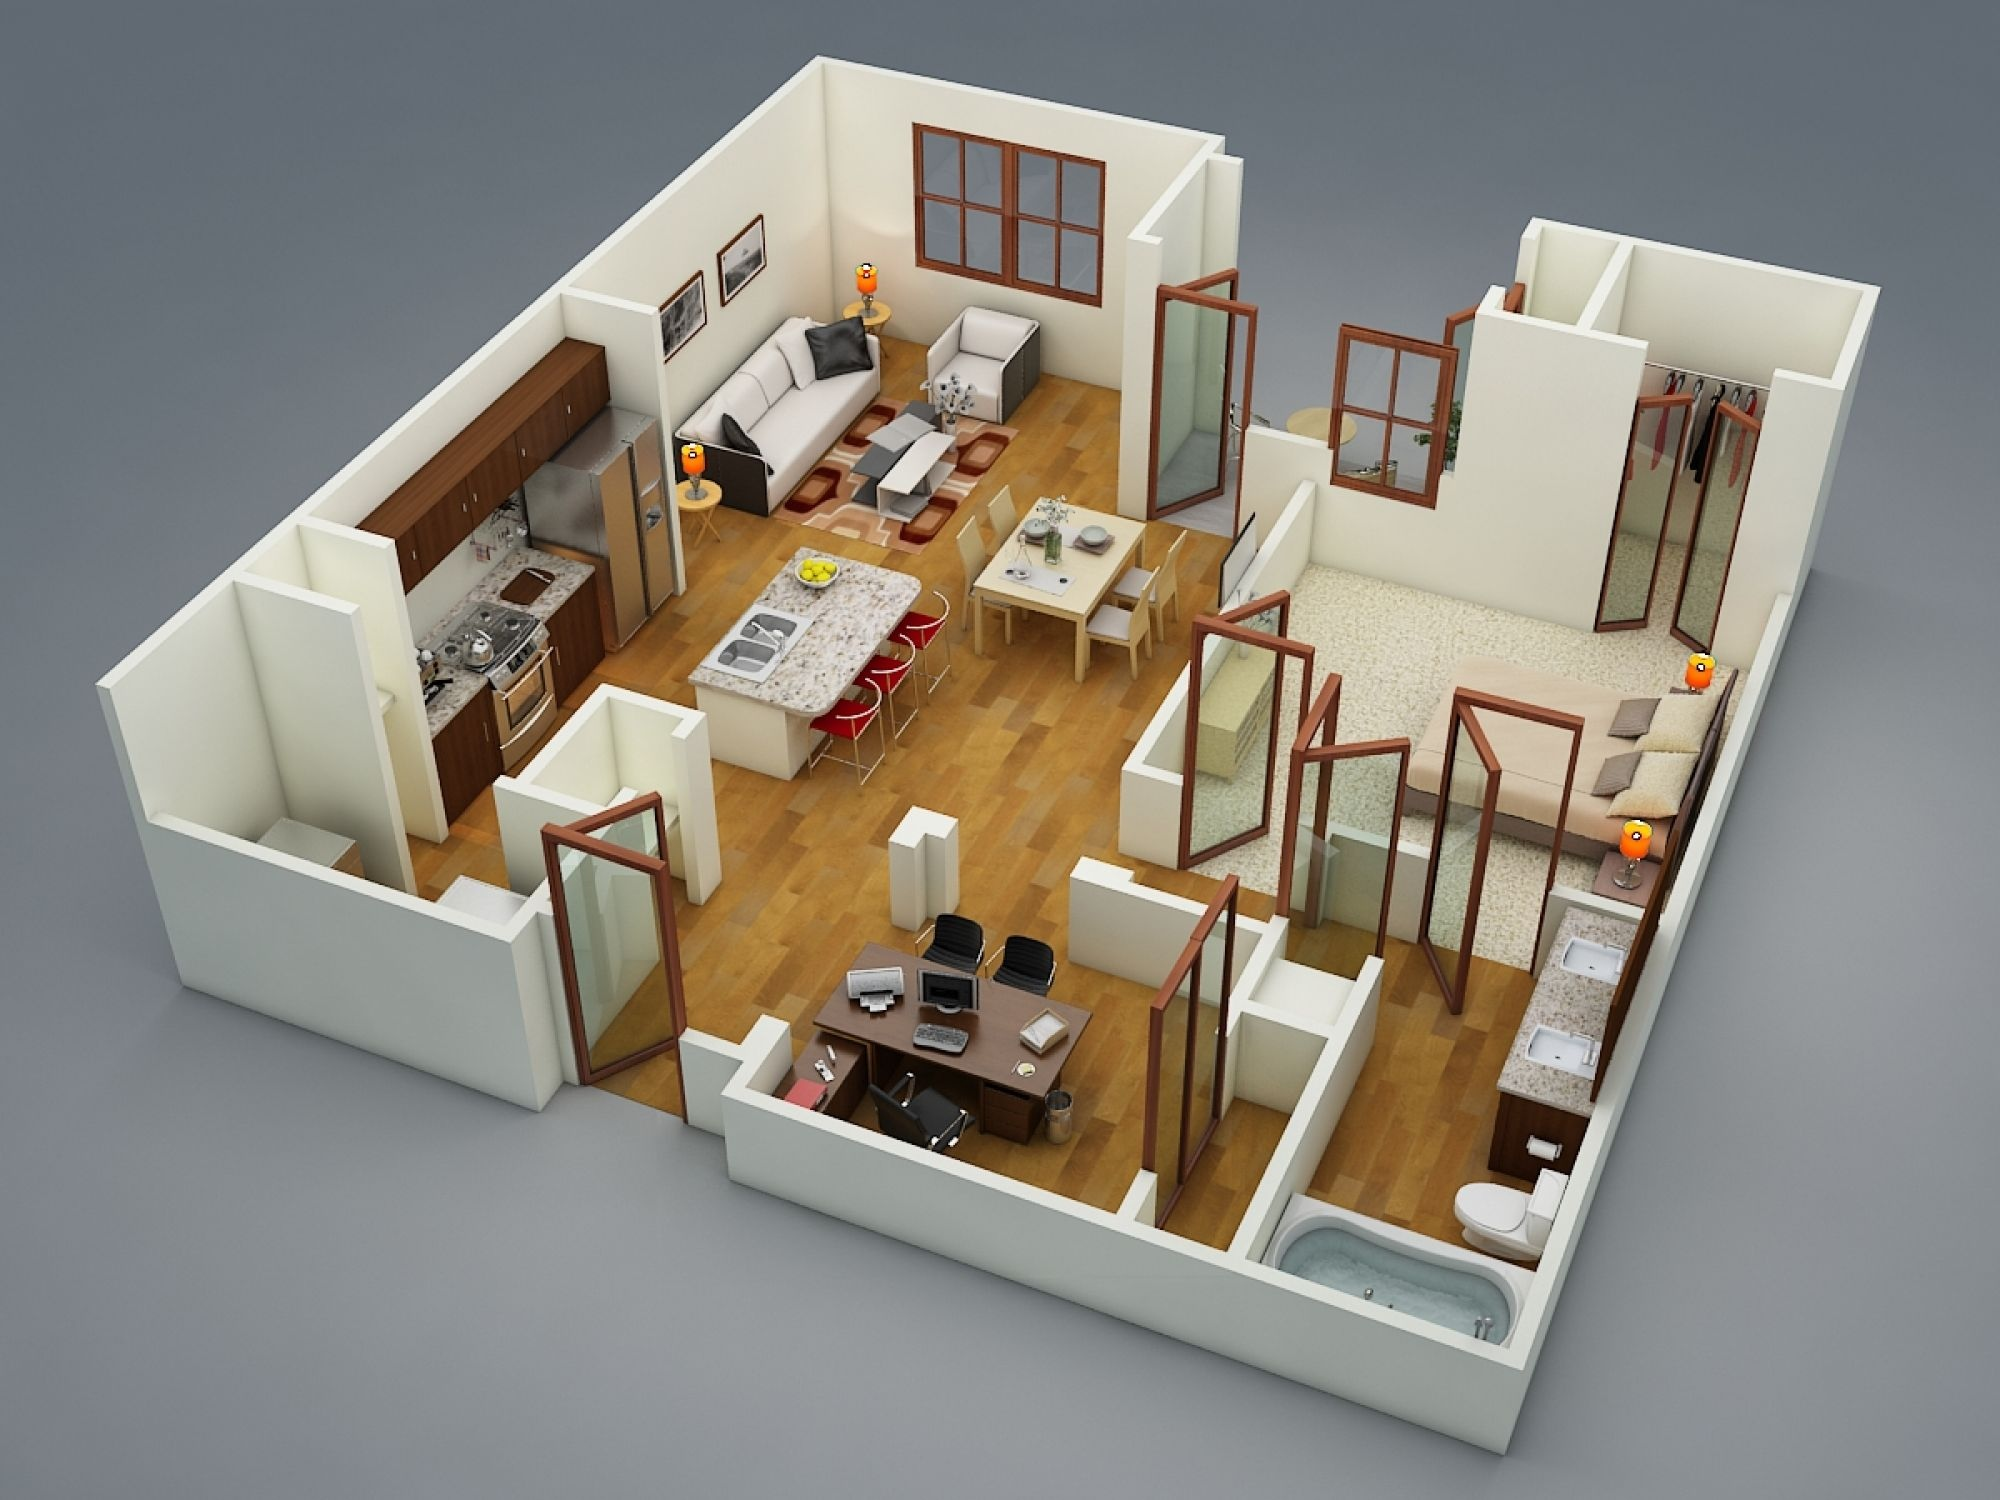 50 one 1 bedroom apartment house plans architecture for Home interior design for small apartments